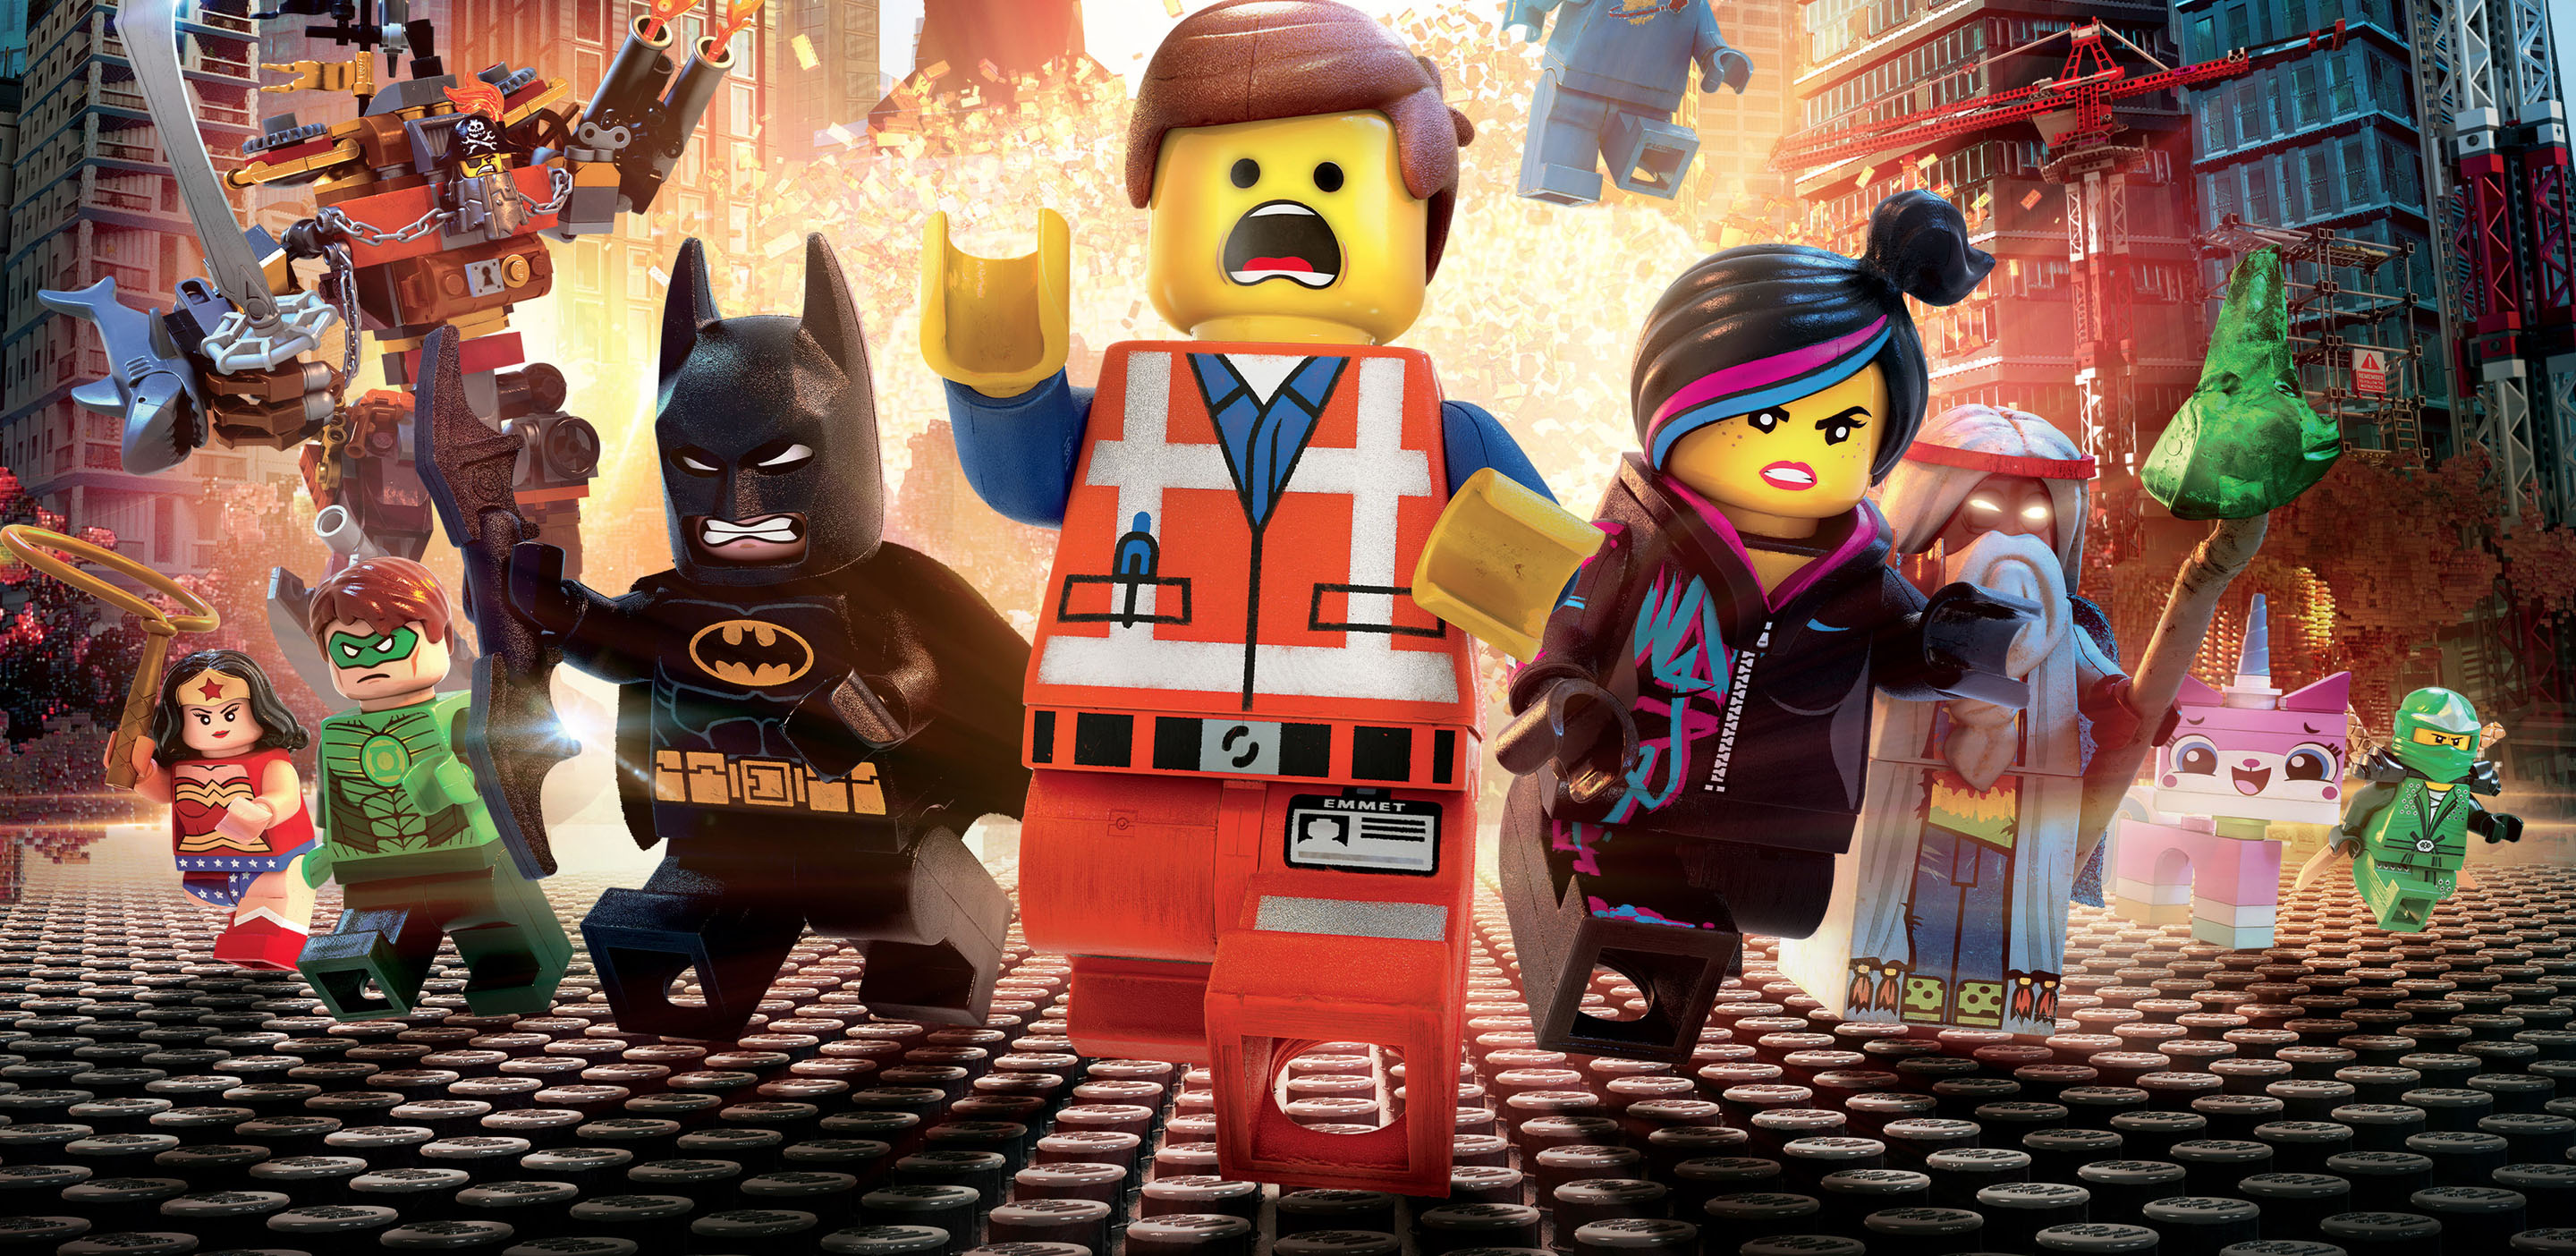 Lego Movie Video Conference & Screening